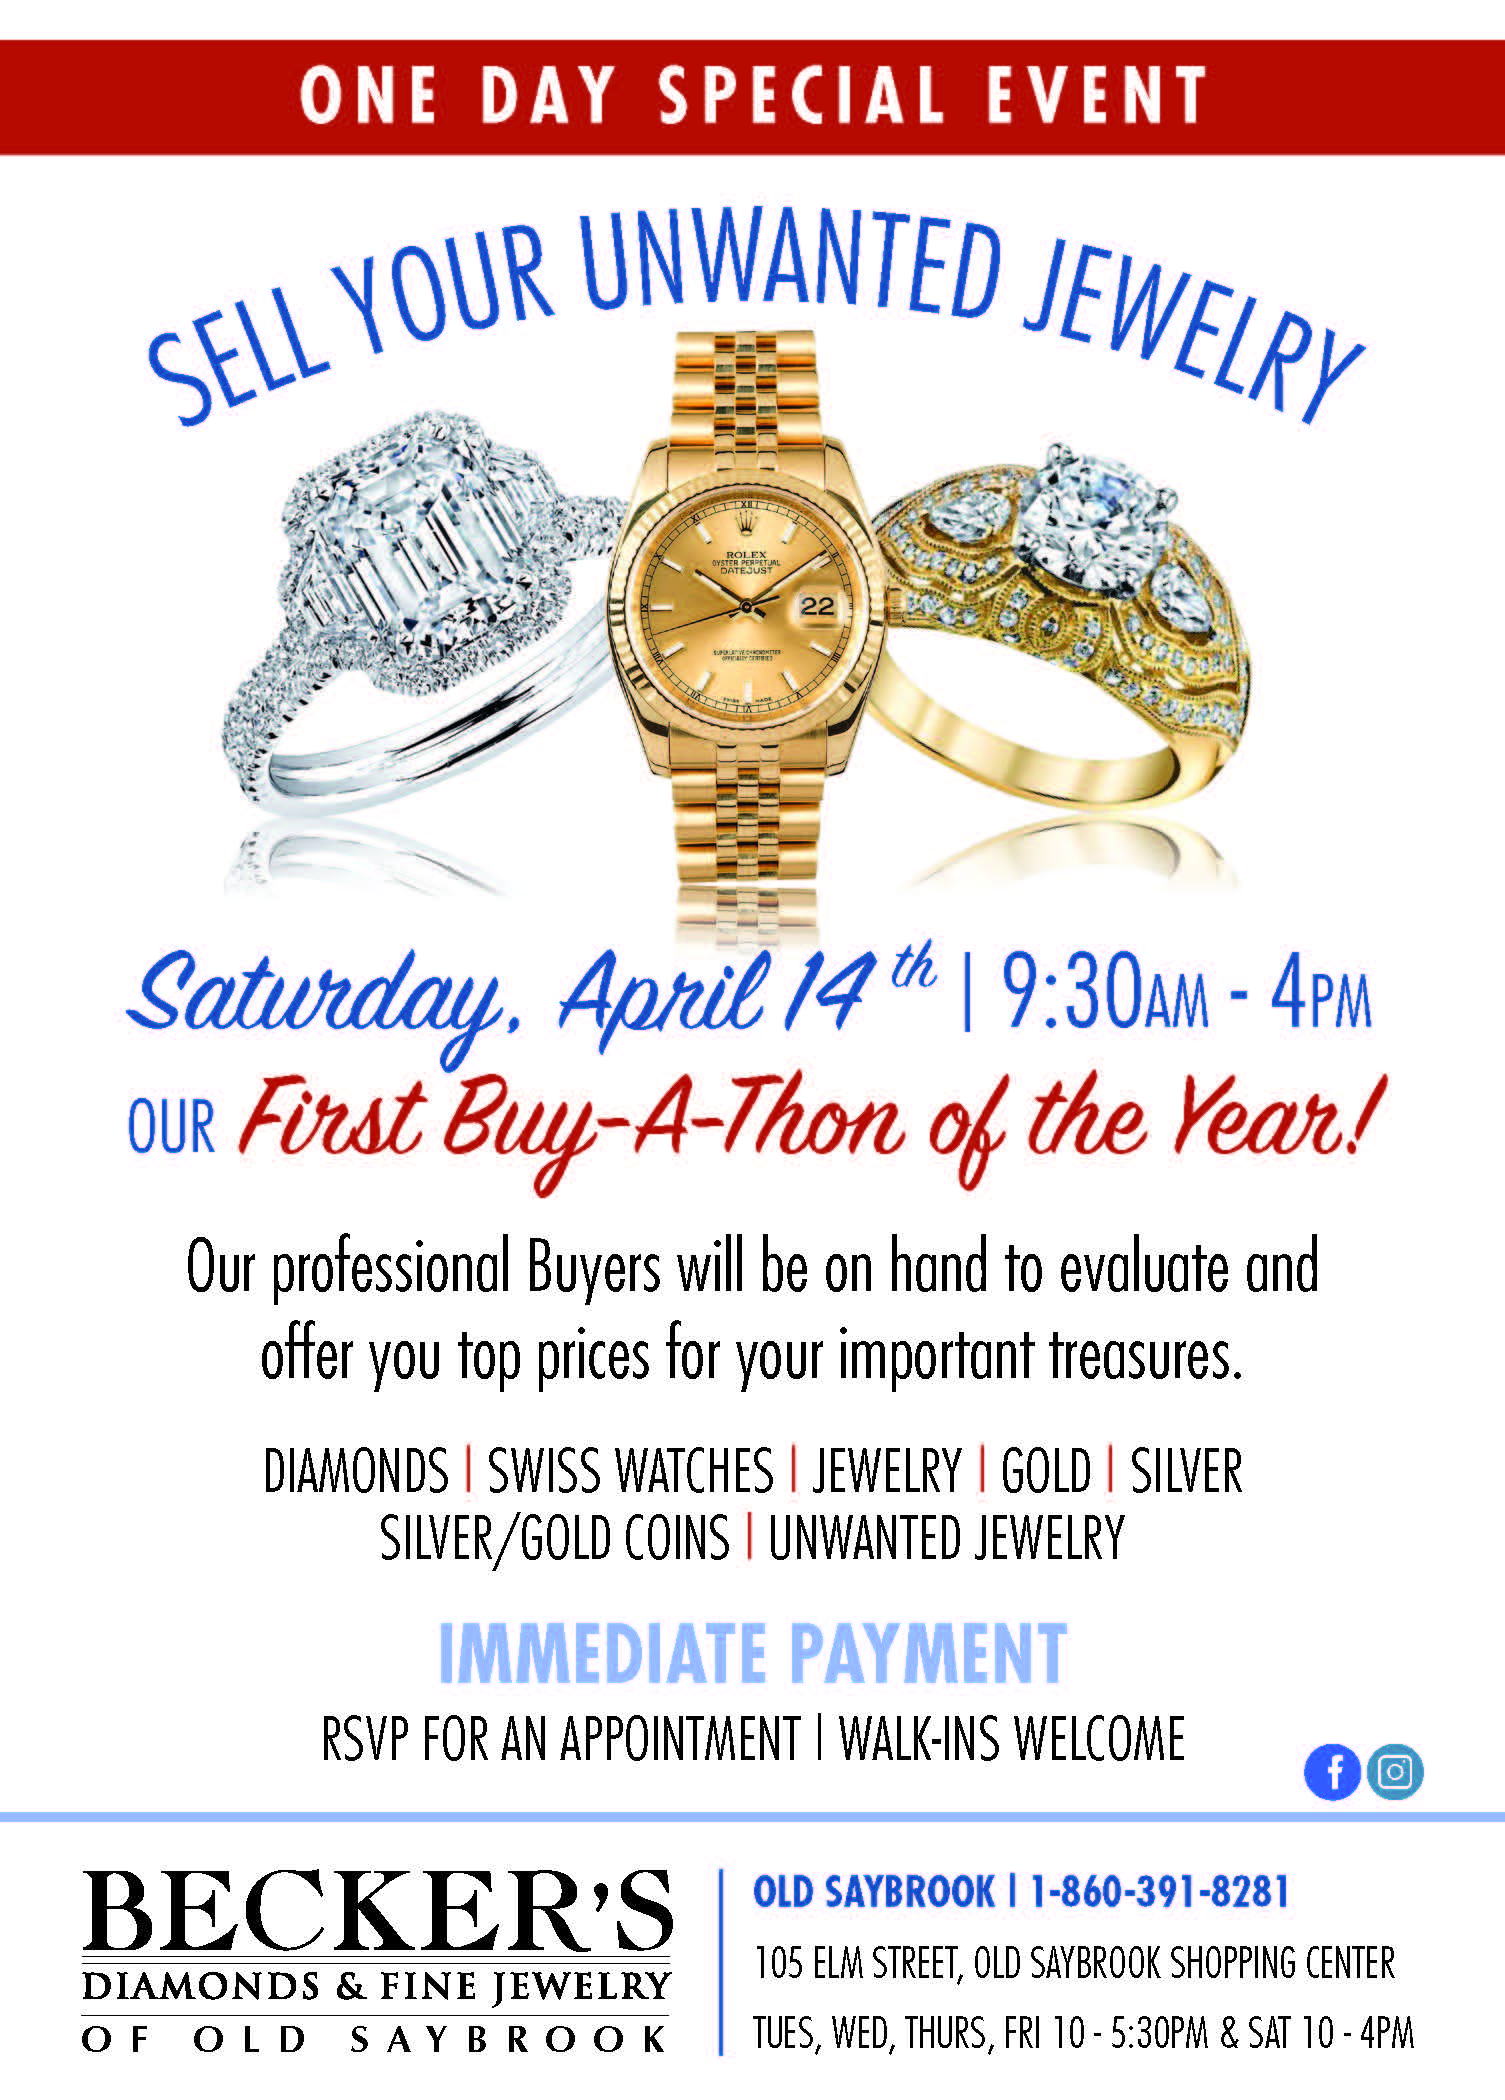 old saybrook buy-a-thon saturday, april 14th 2018